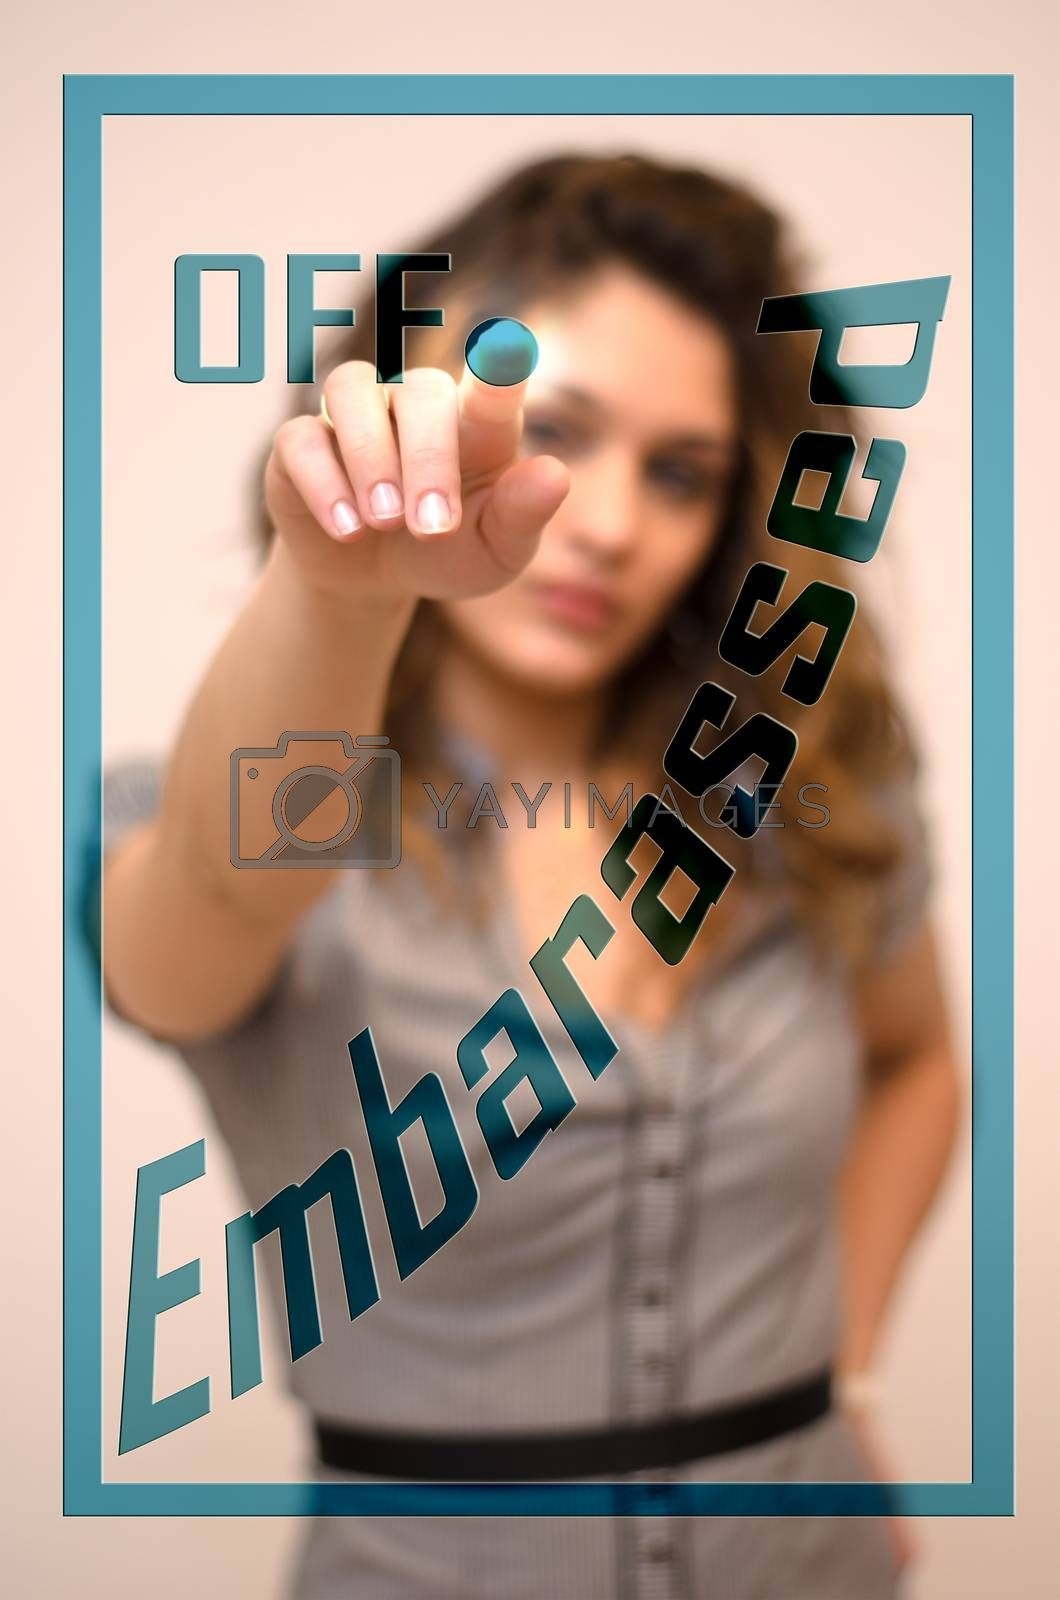 Royalty free image of woman switching off Embarassed on digital interace by vepar5